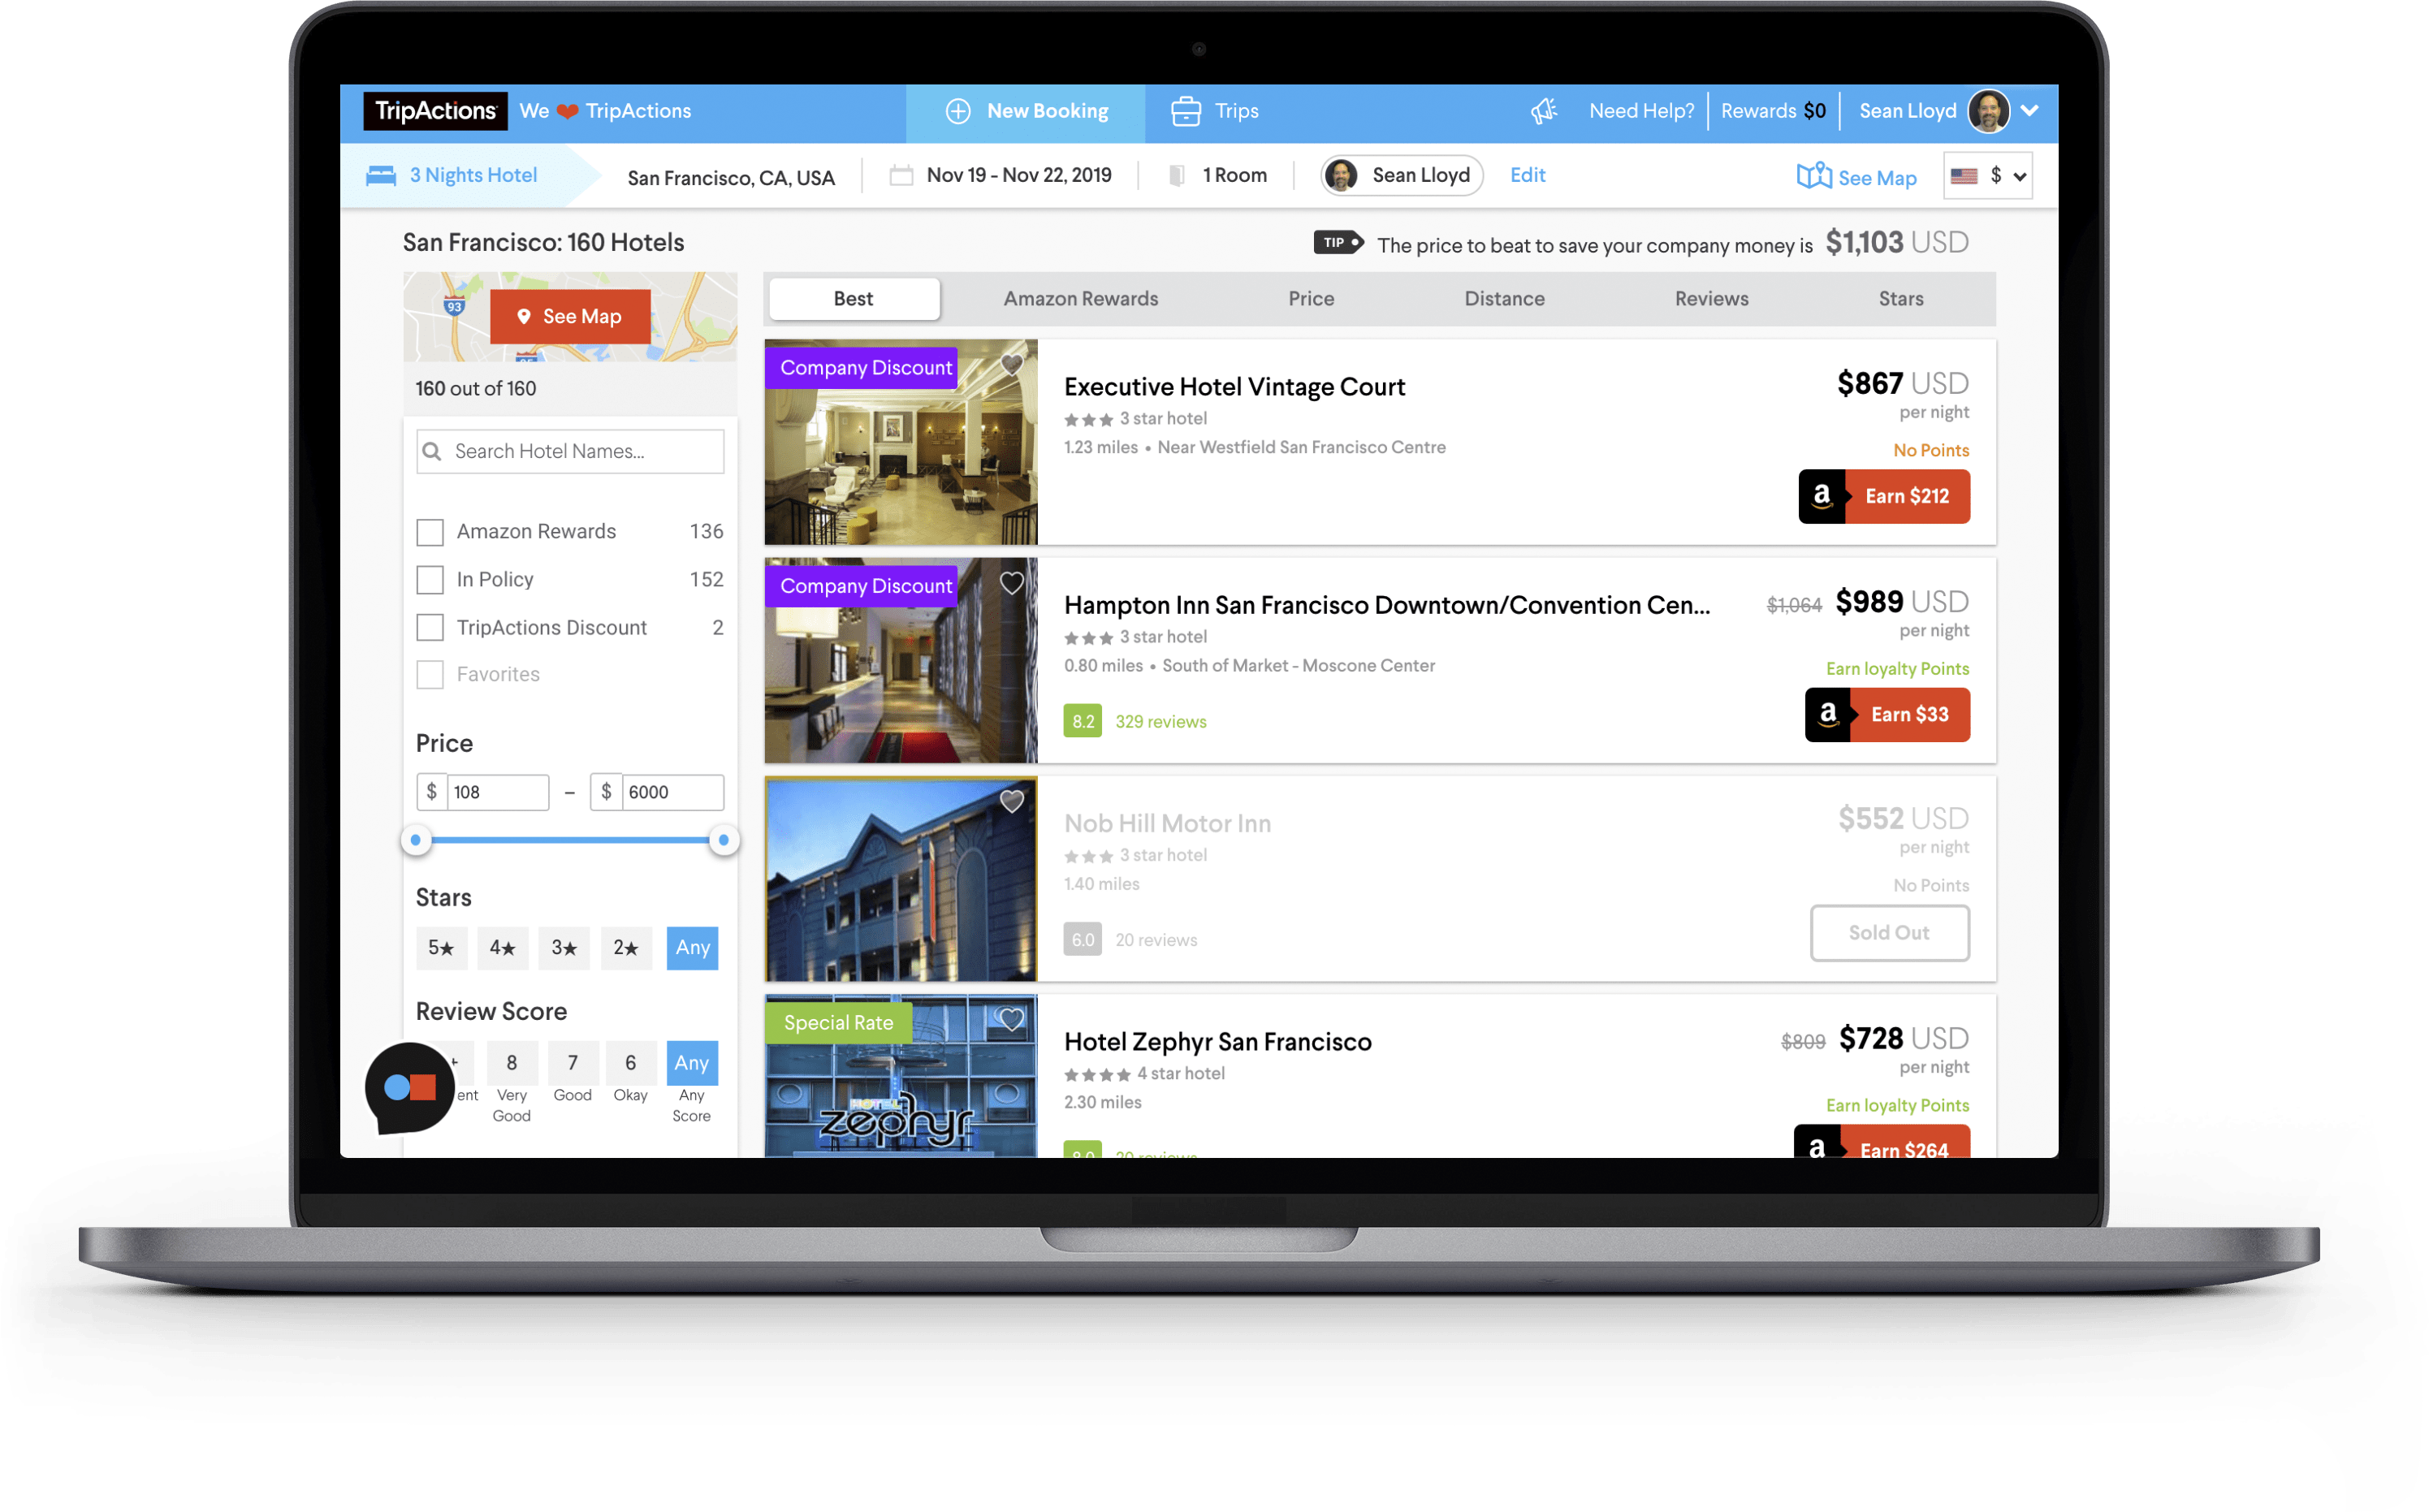 TripActions Product Screenshot - Great experience and inventory encourages adoption and savings